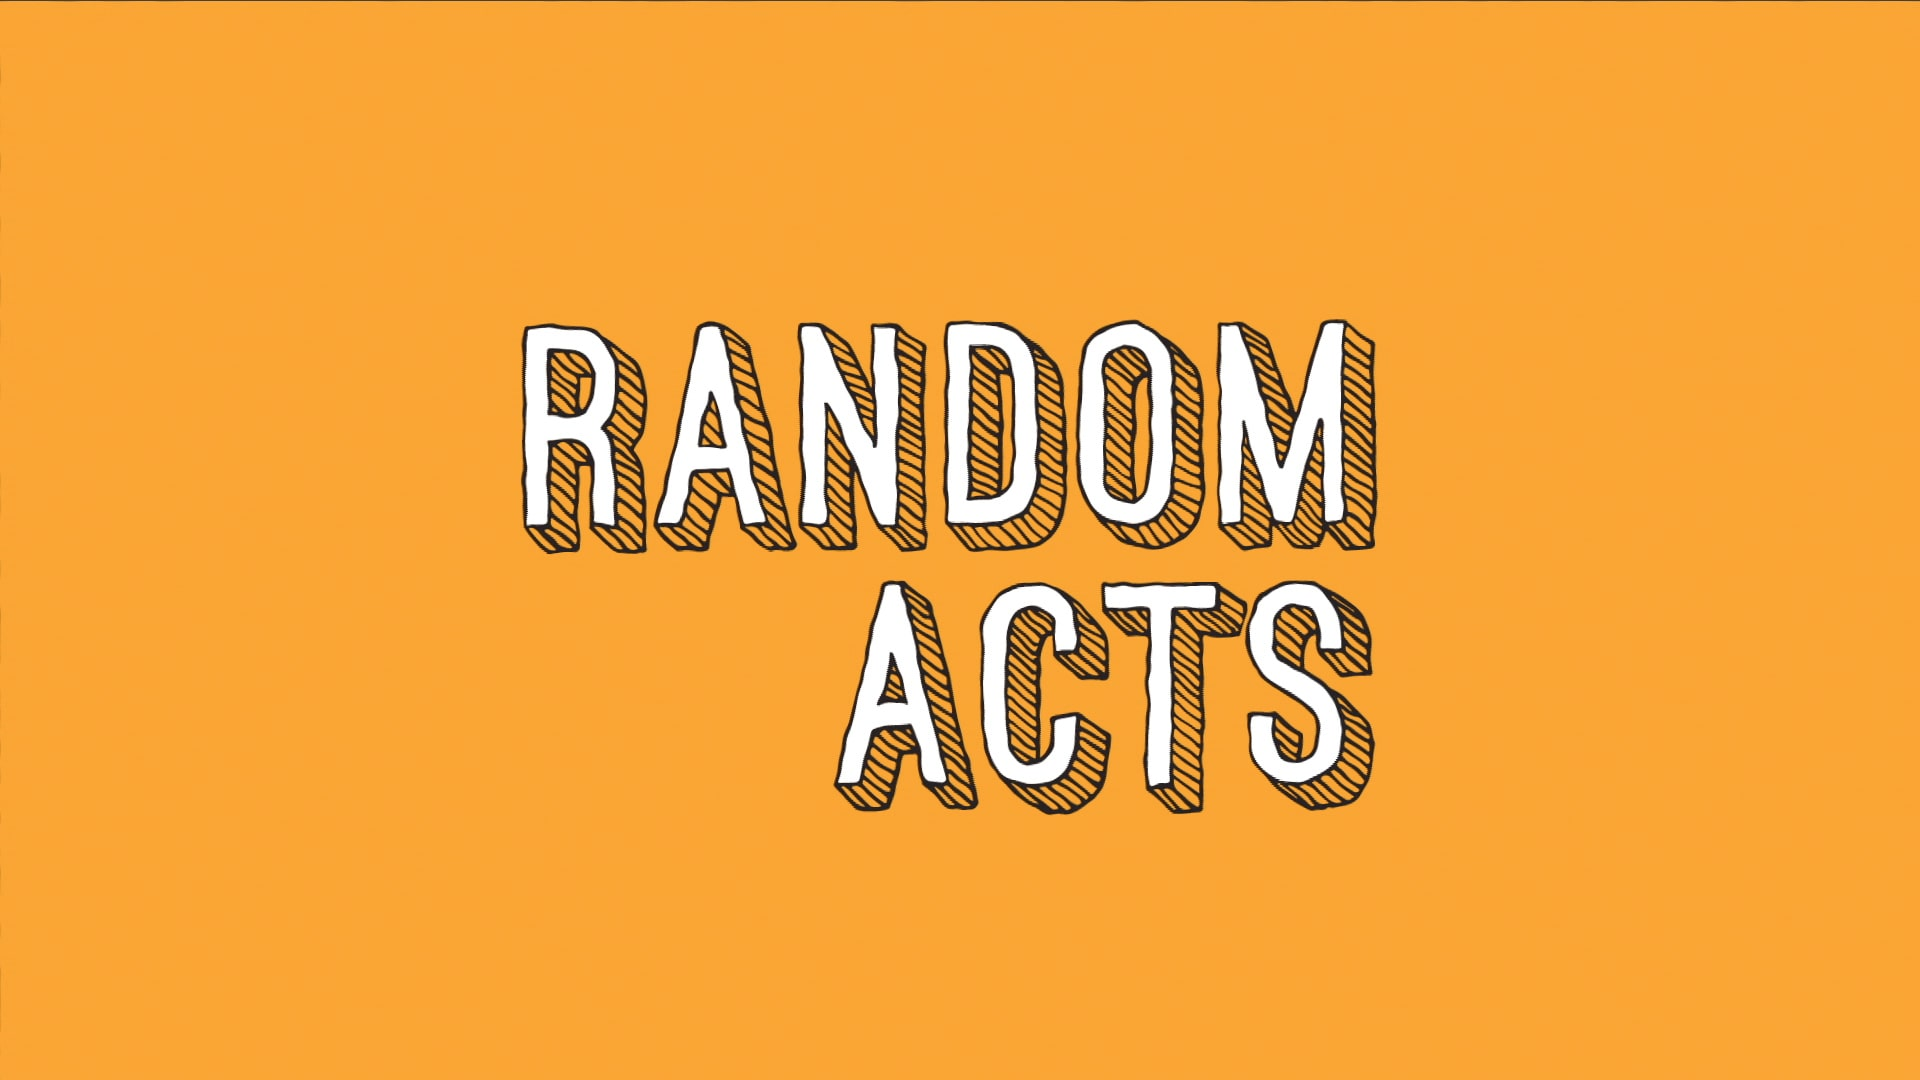 Features scenes from the BYU tv show Random Acts, which follows a  team of proficient pranksters goes undercover to make deserving people's dreams come true in Random Acts, BYUtv's original hidden camera series.